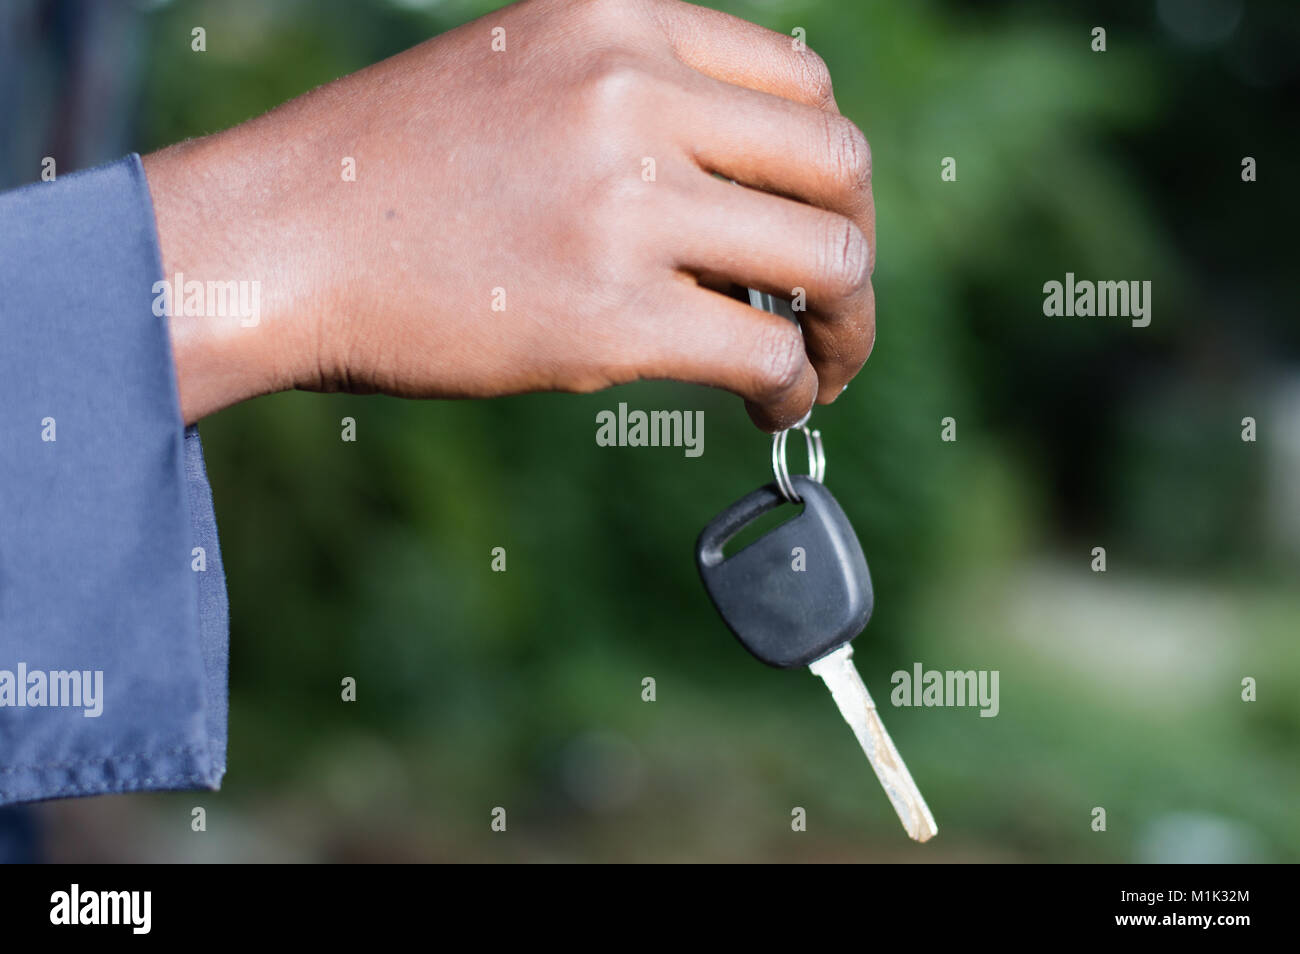 a hand holding a car ignition key outside. - Stock Image